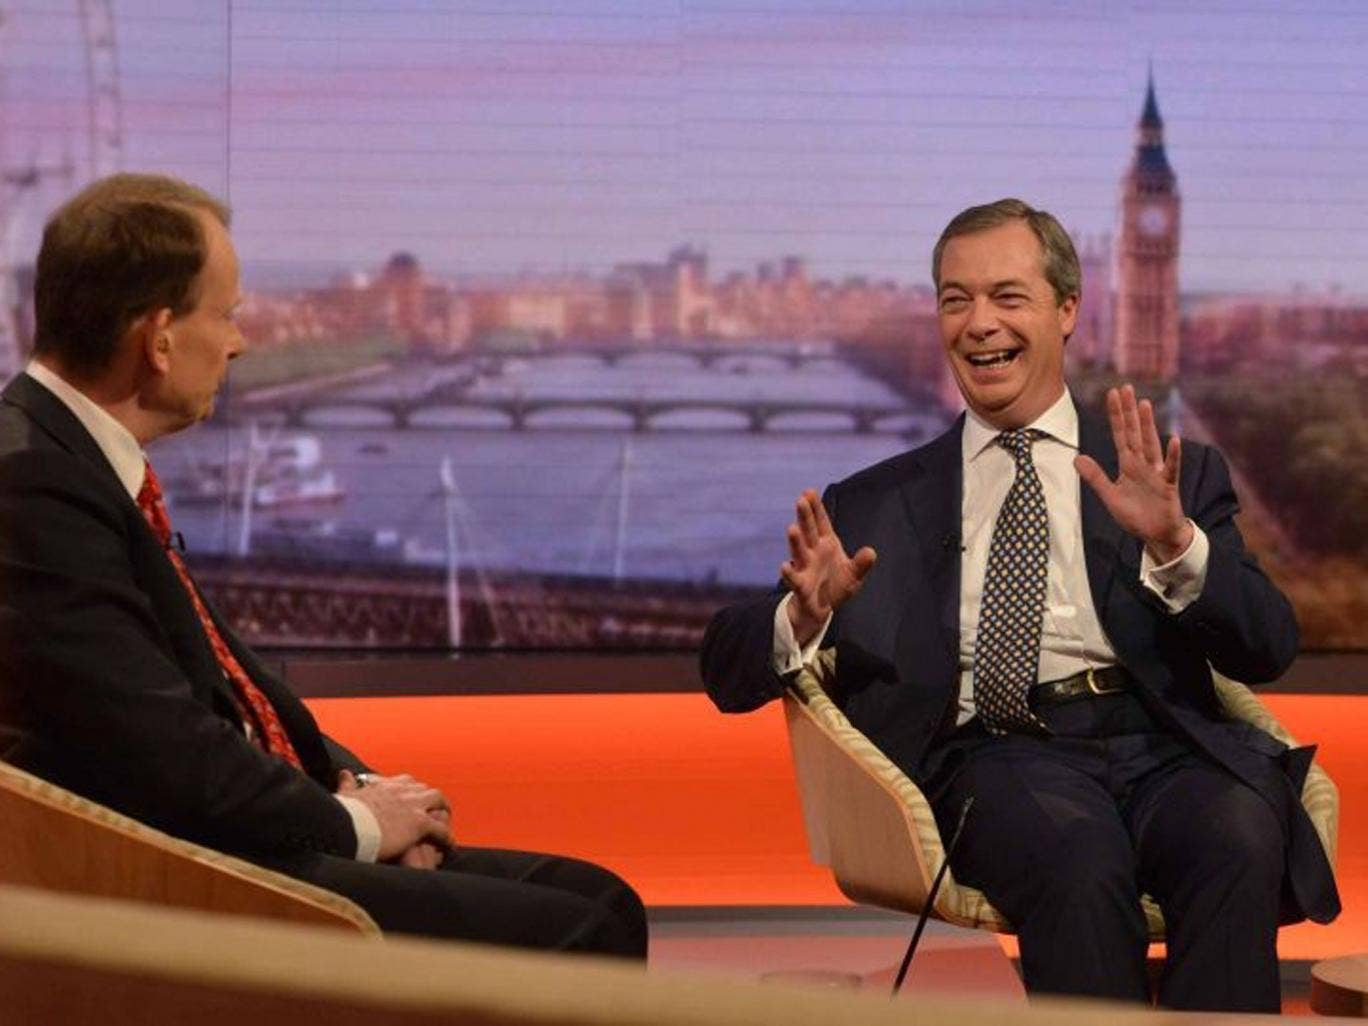 Nigel Farage appears on The Andrew Marr Show on Sunday 2 March, 2014. He has defended jokes told about foreigners at the party's spring conference in Torquay